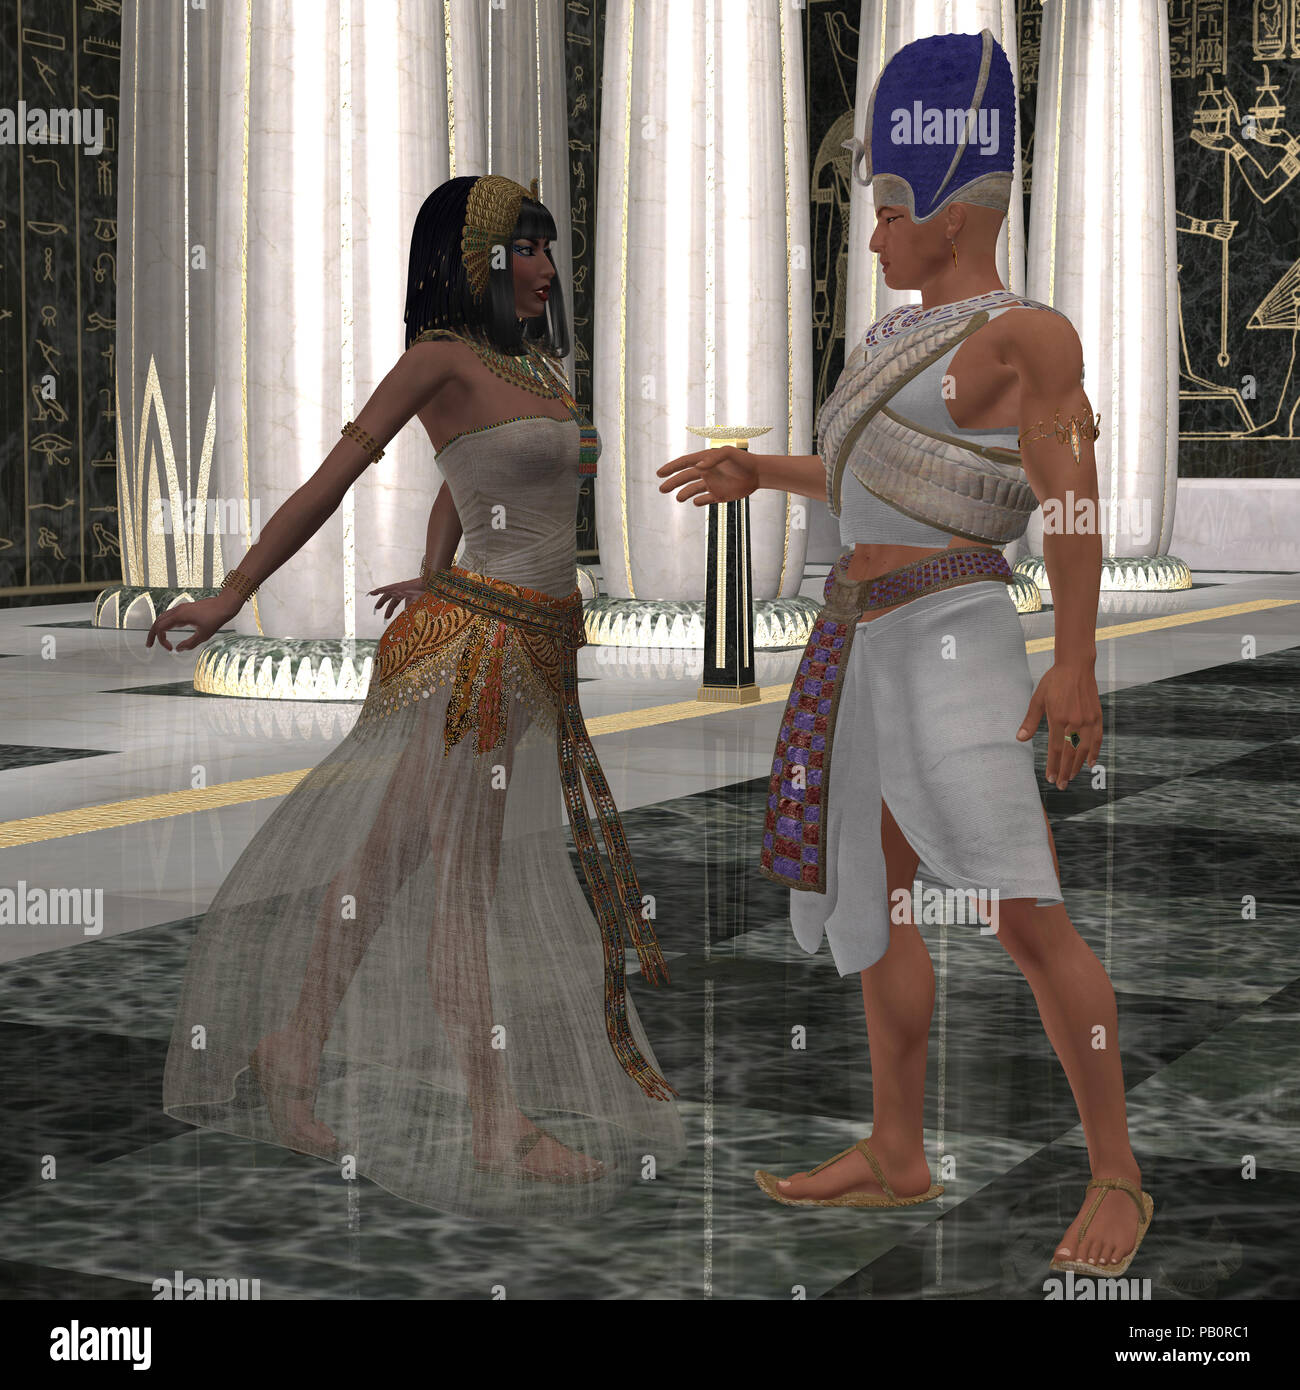 Egyptian Couple - Beautiful Pharaoh's wife dances for him in the throne room full of pillars of Egypt's Old Kingdom. - Stock Image